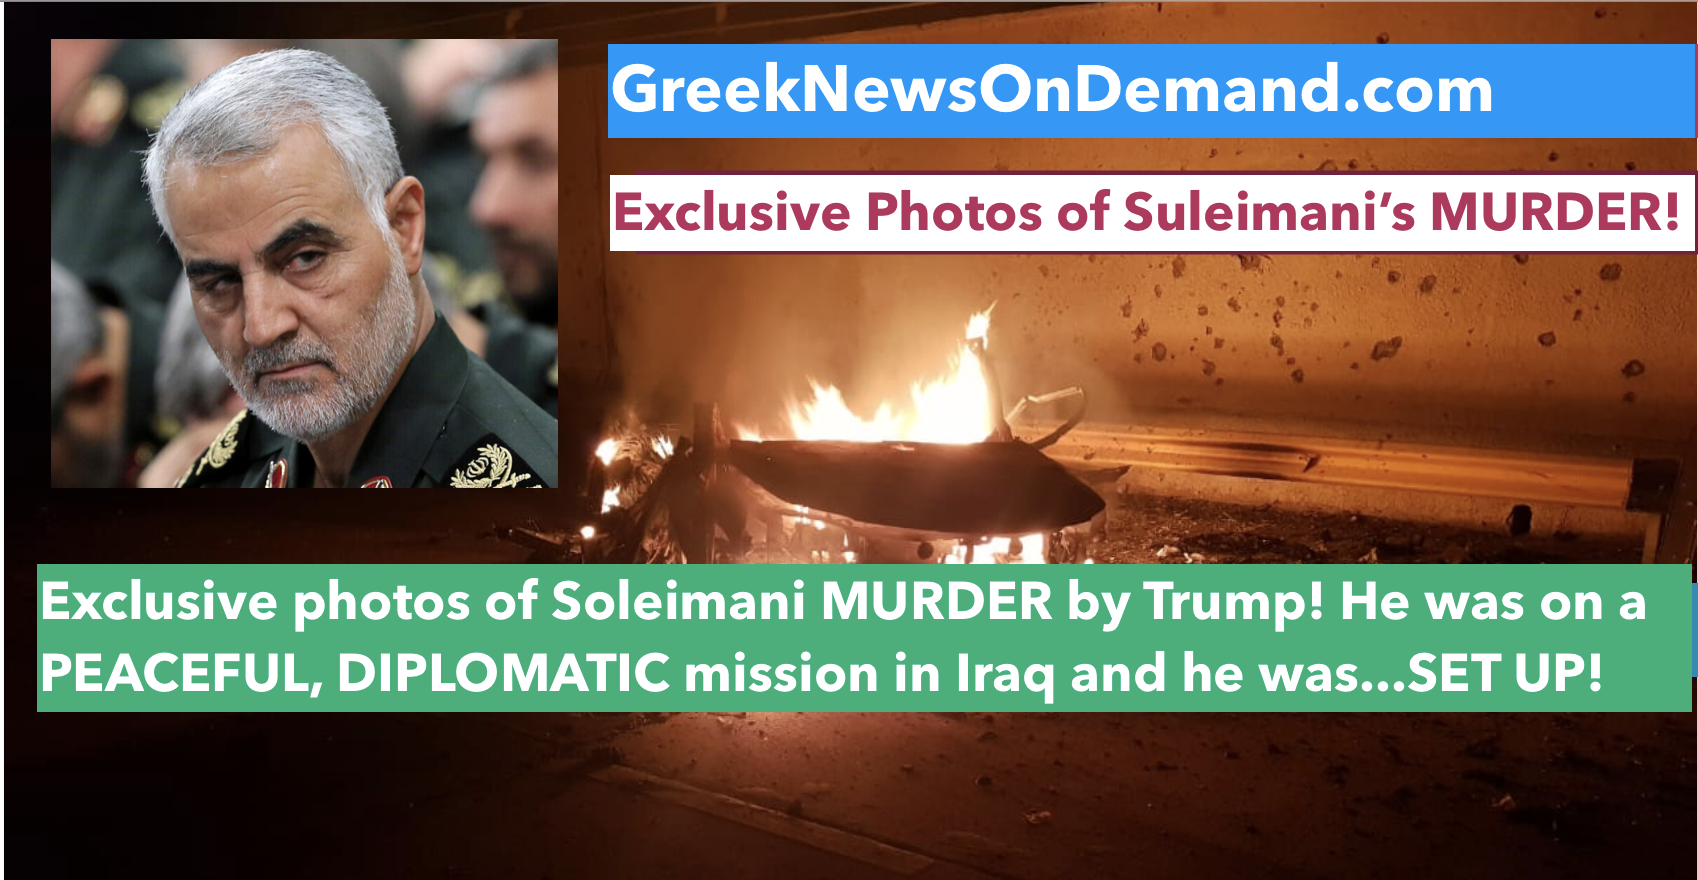 Exclusive photos of Soleimani MURDER by Trump! He was on a PEACEFUL, DIPLOMATIC mission in Iraq and he was…SET UP!